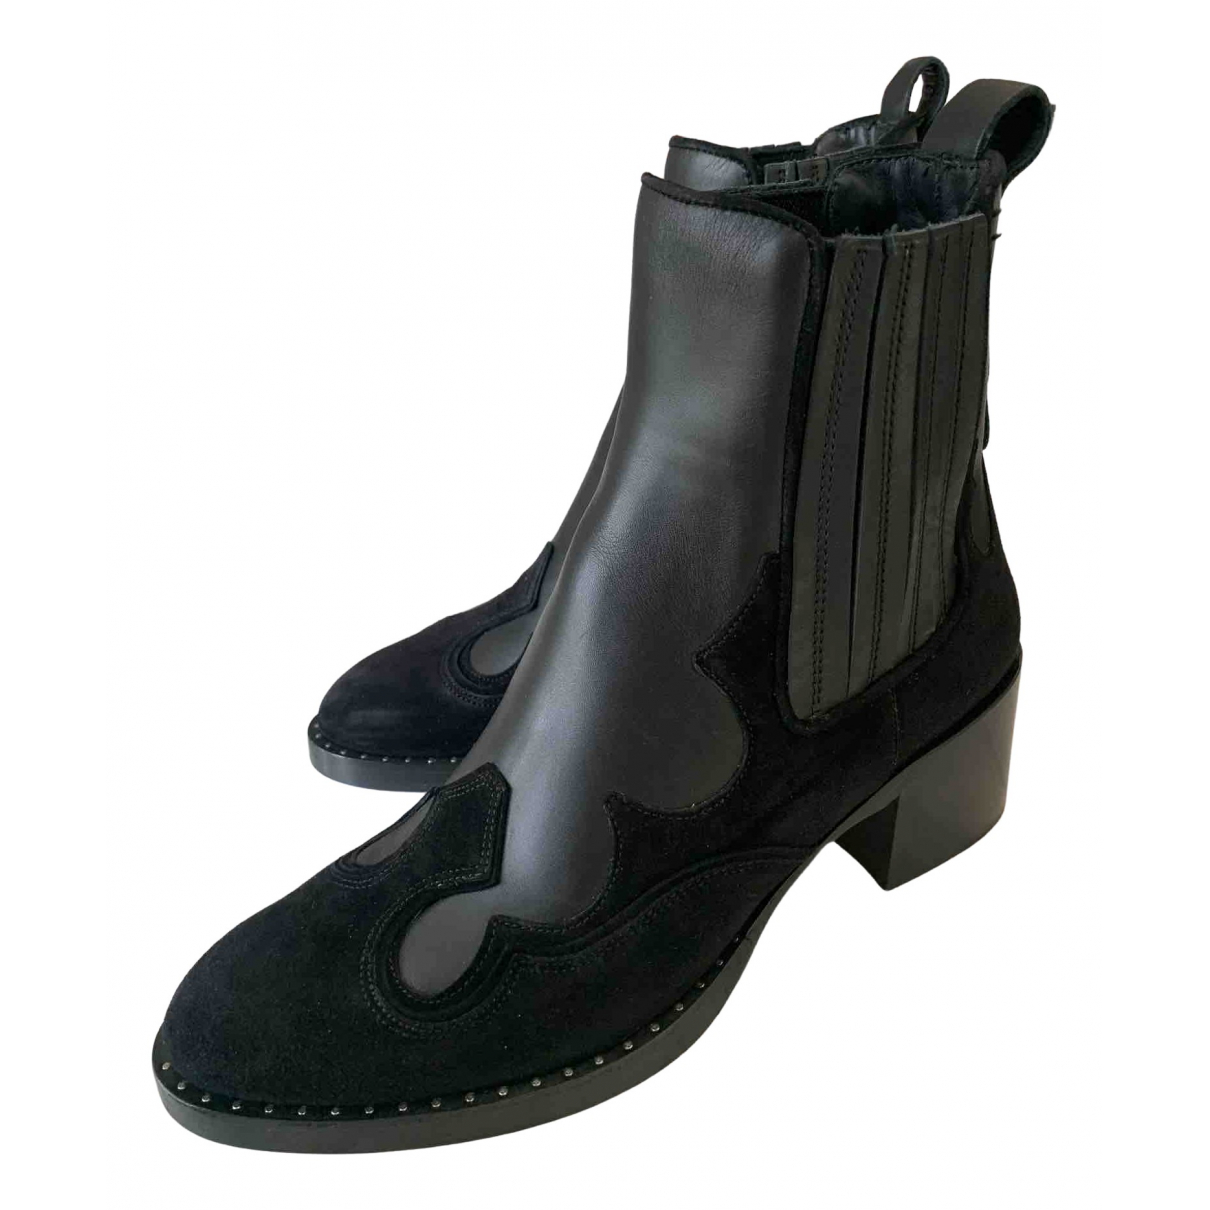 Carshoe \N Black Leather Boots for Women 37 EU